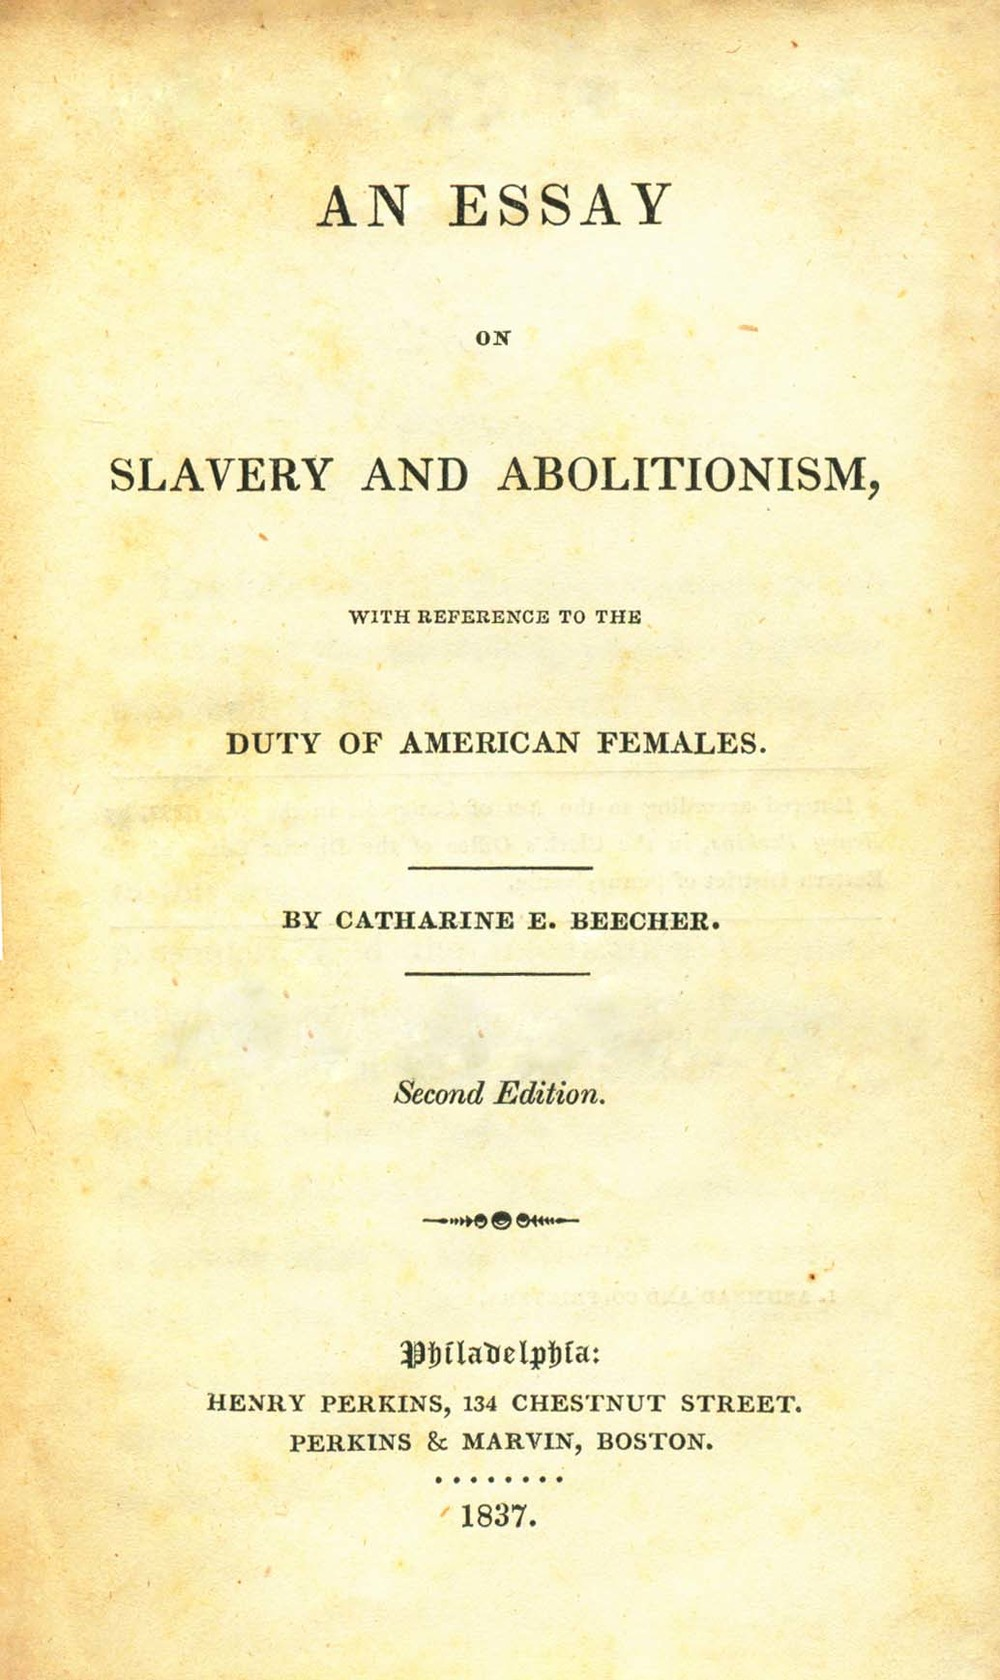 essay on slavery and abolitionism An essay on slavery and abolitionism, with reference to the duty of american females.